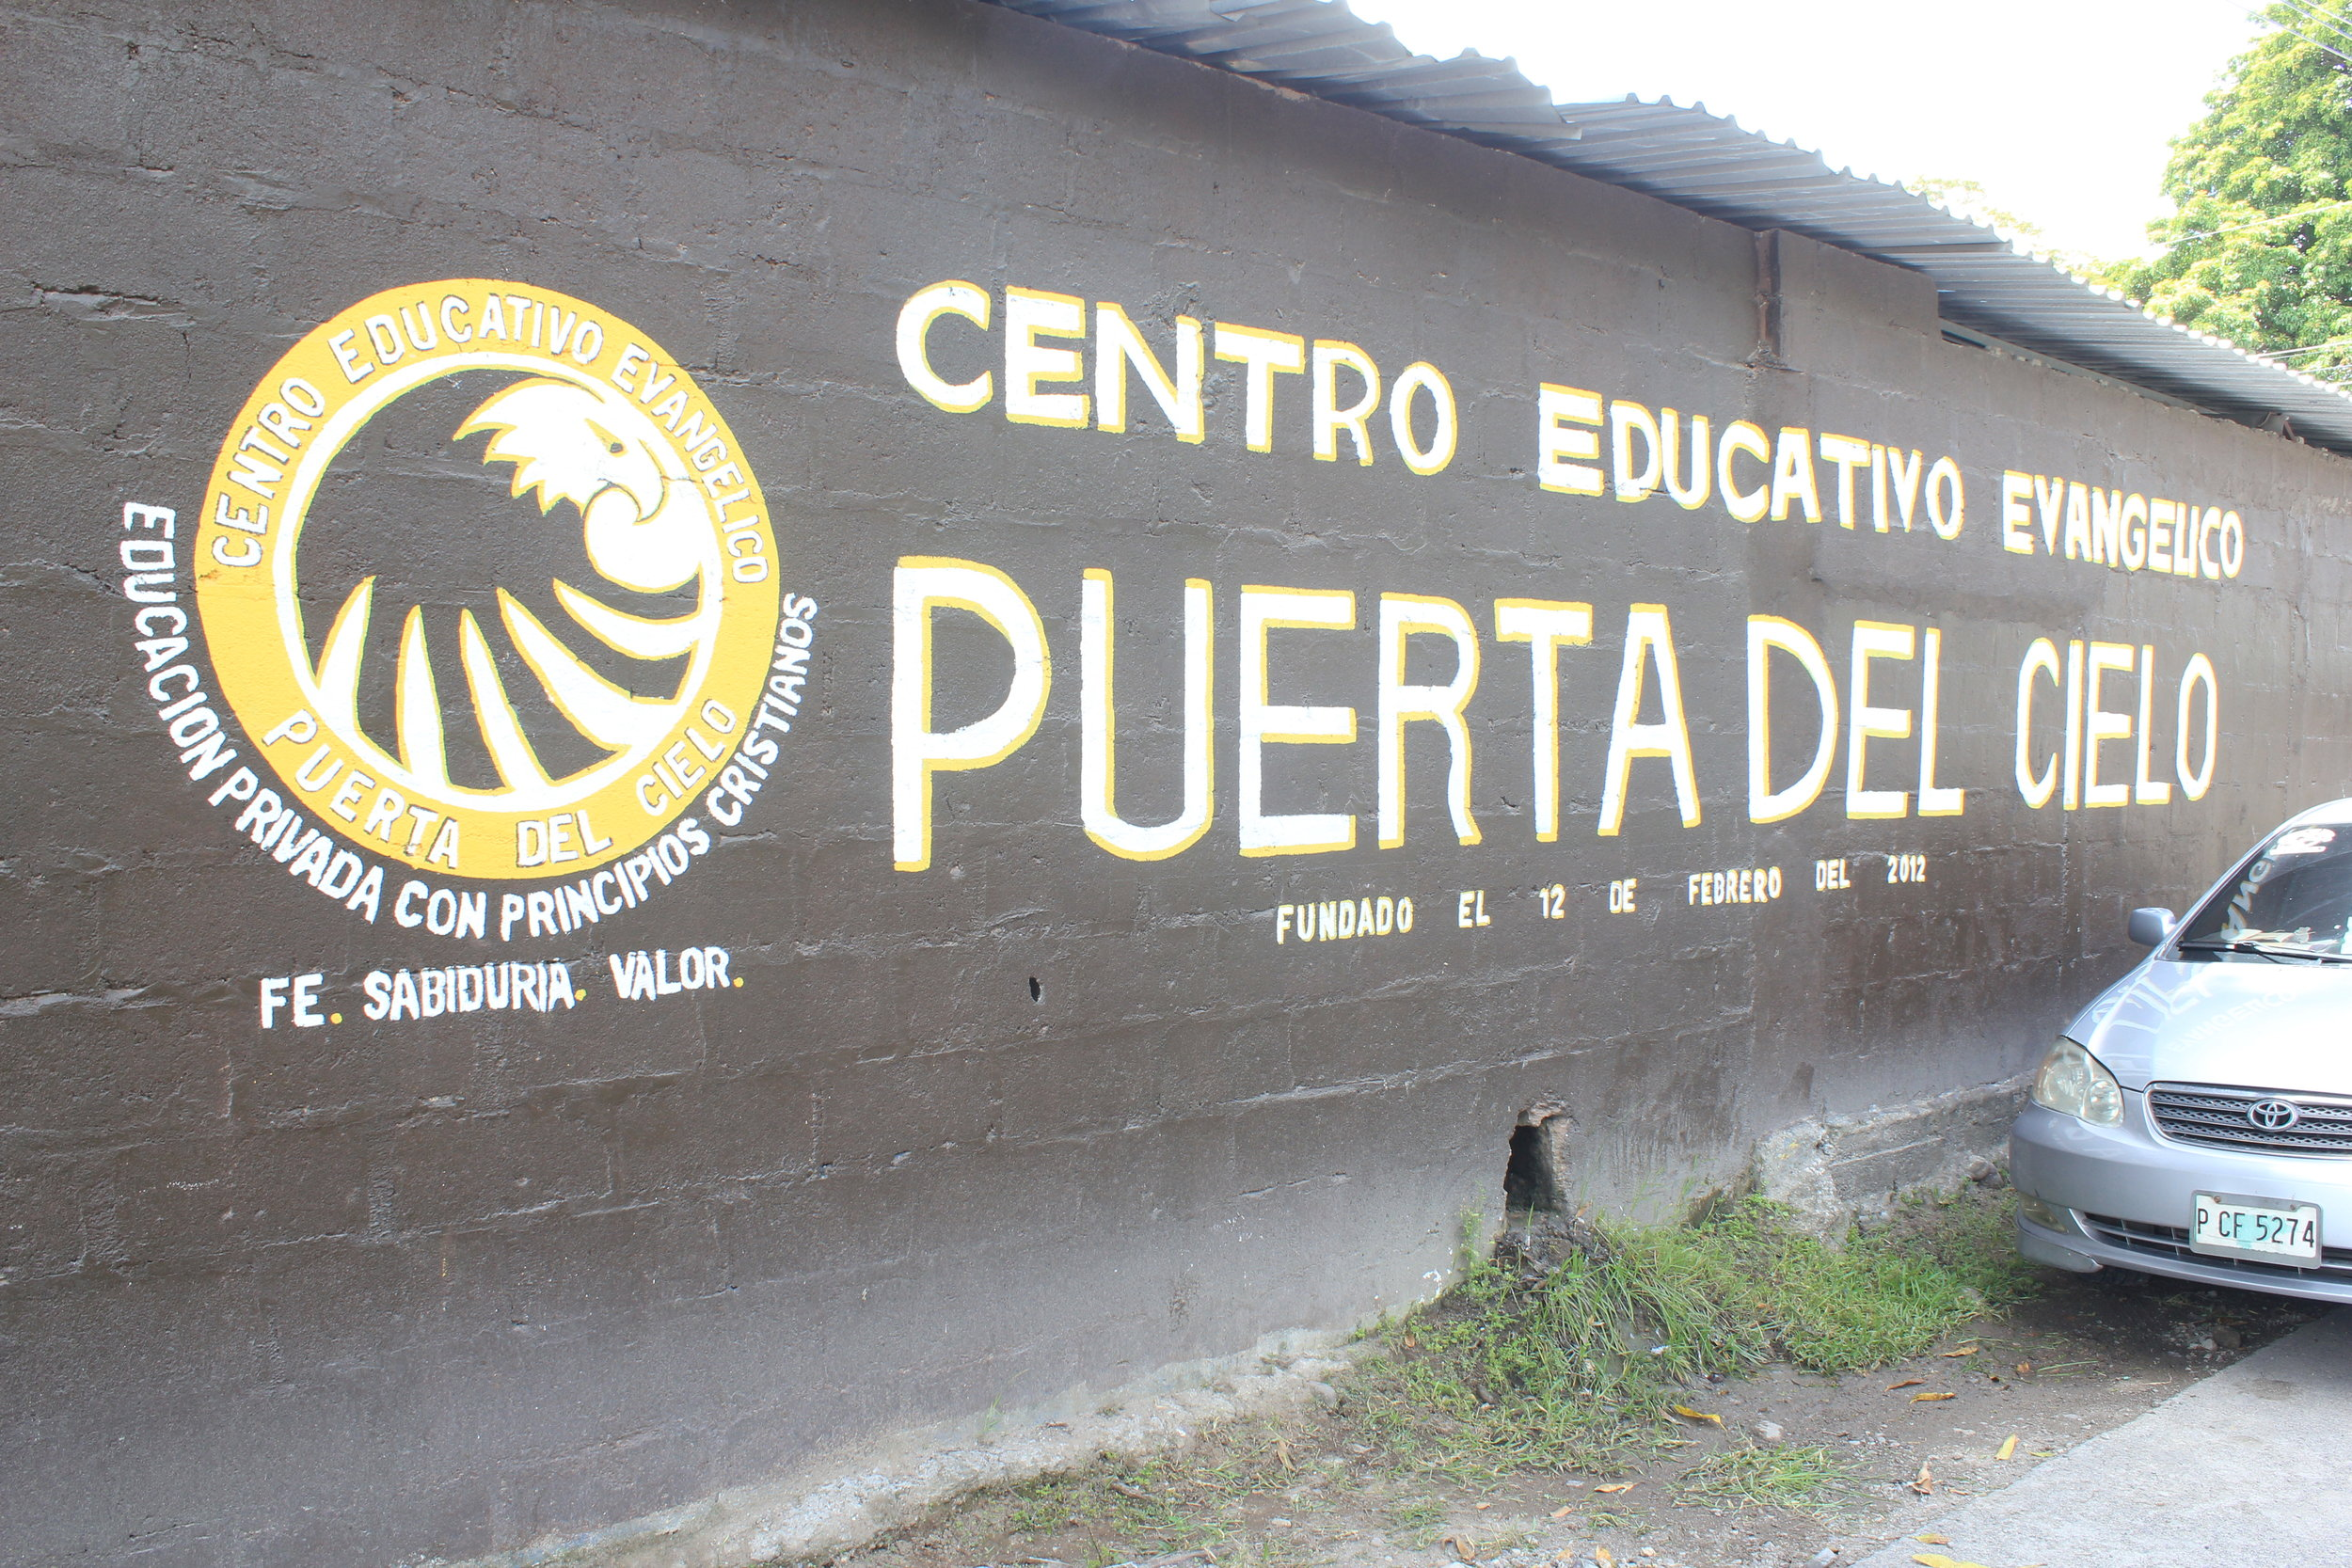 The Outside Wall of Puerto Del Cielo